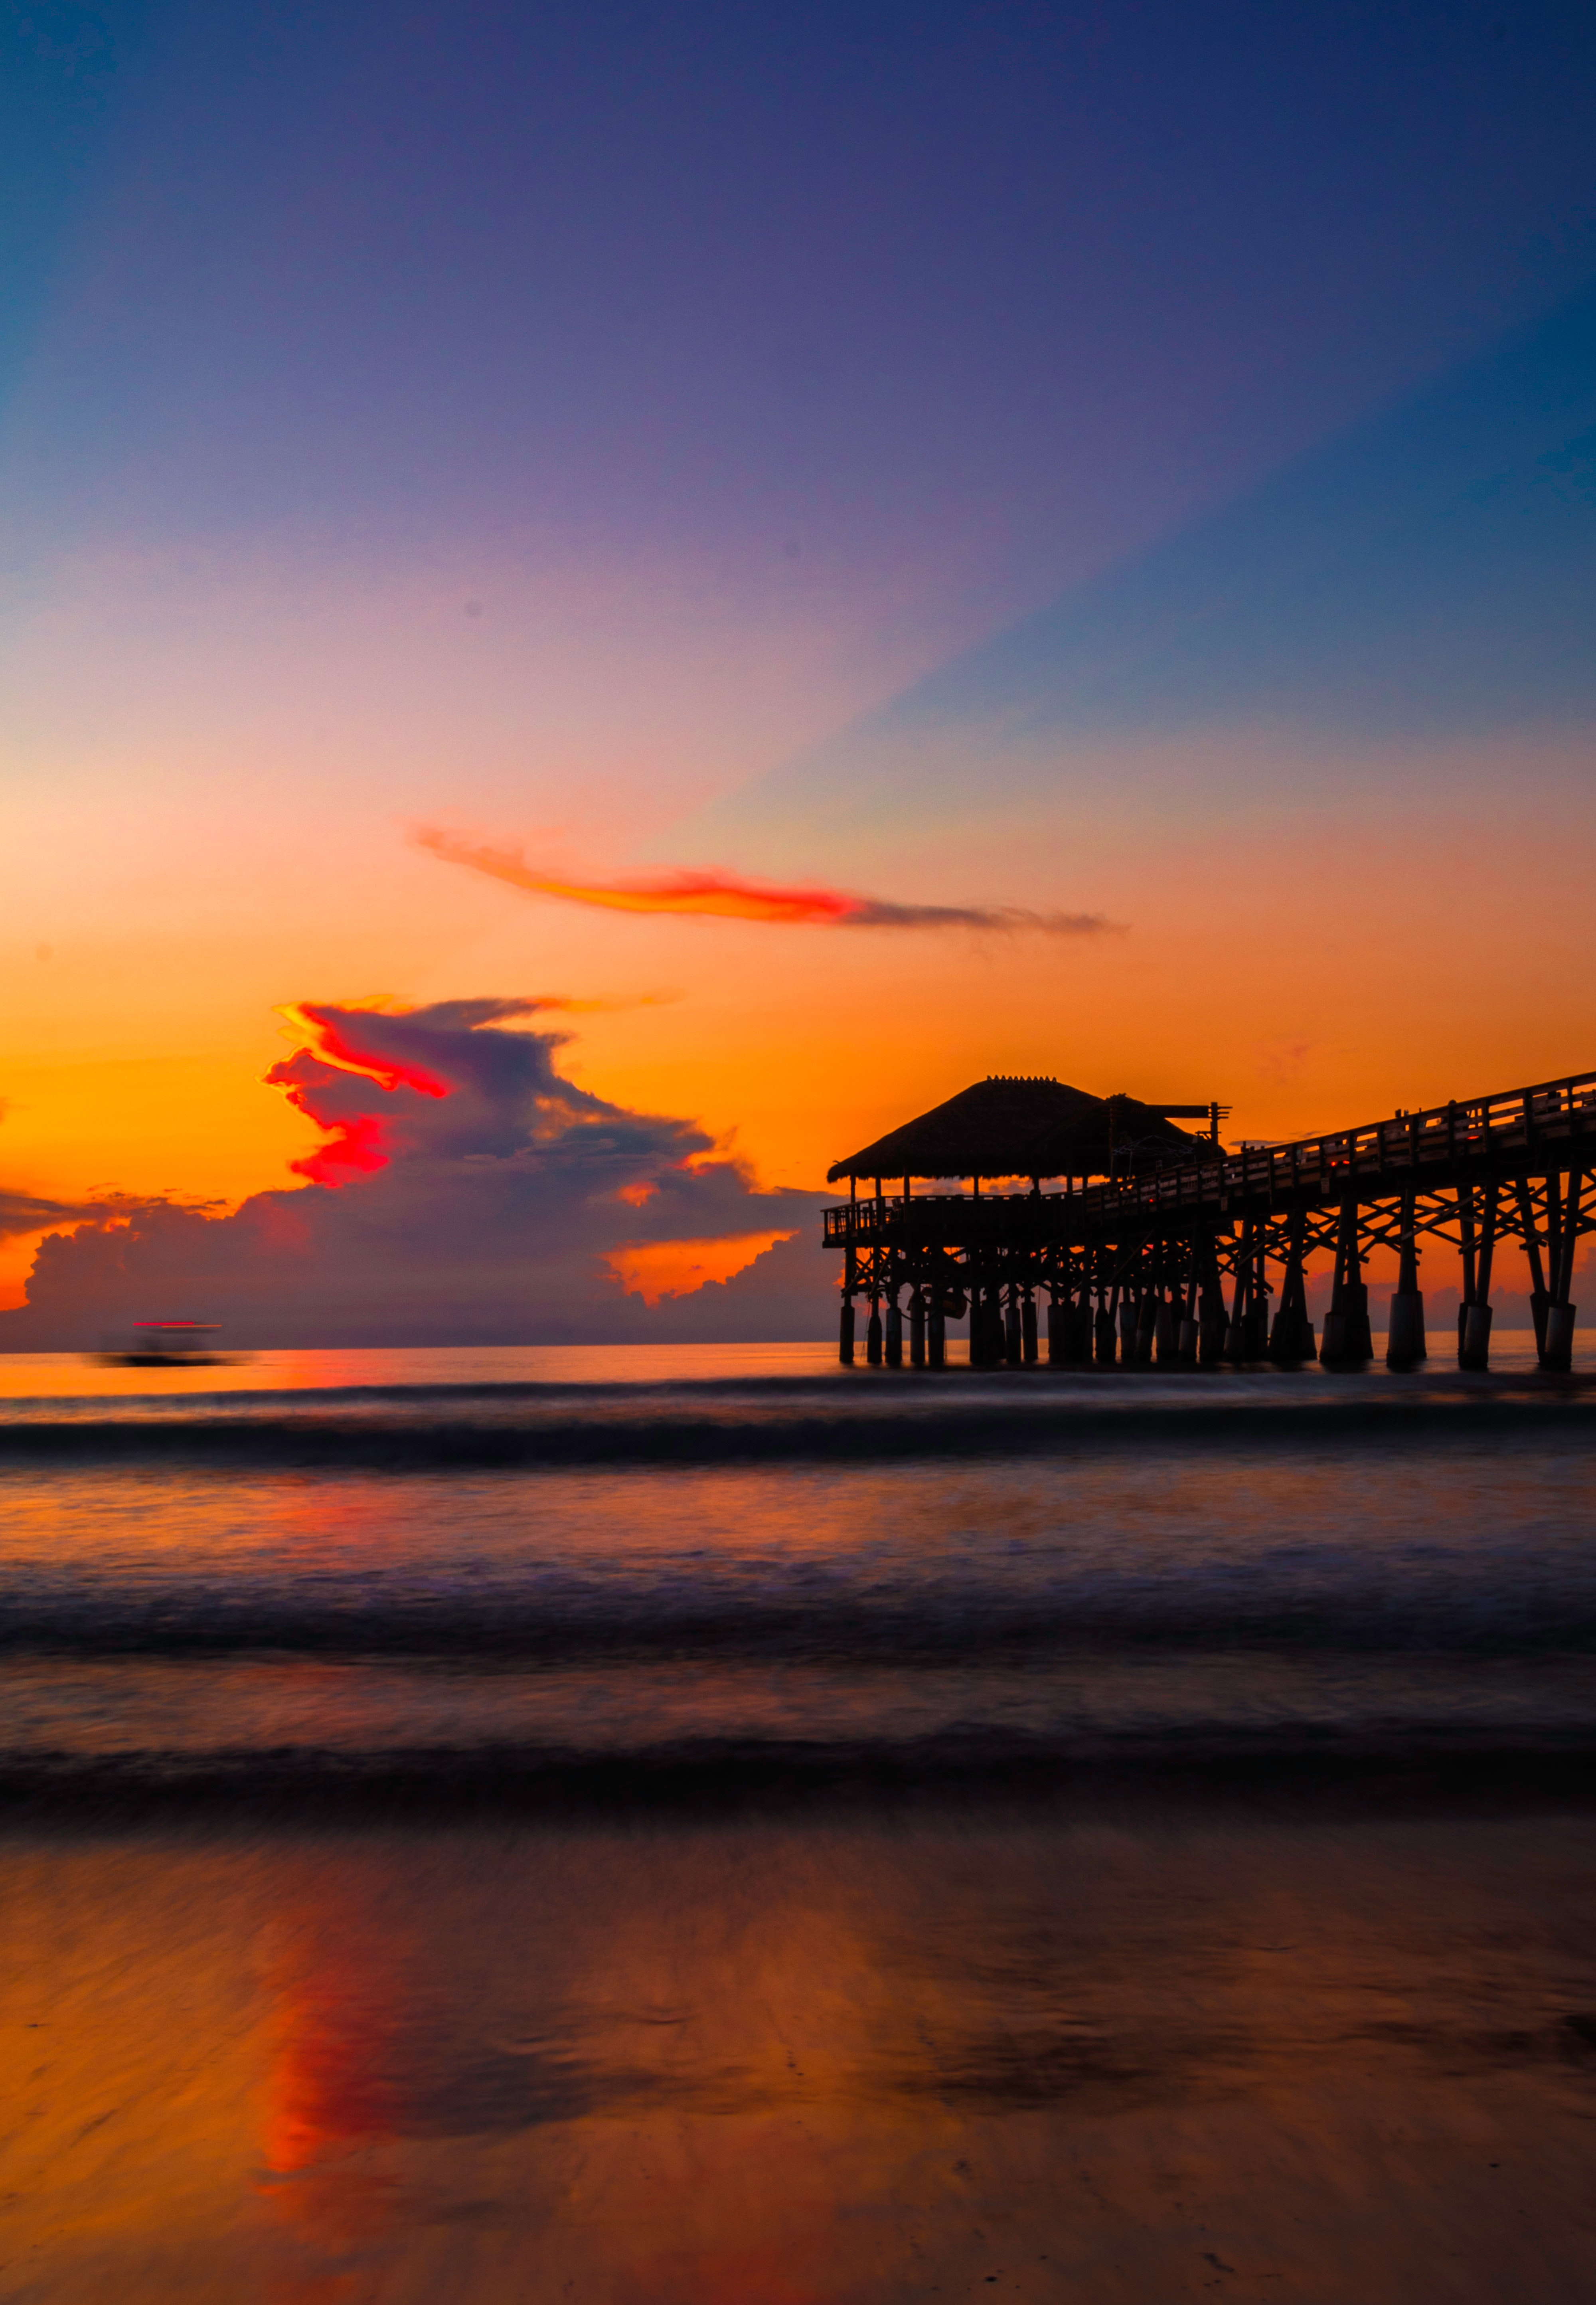 Photography of a dock during sunset